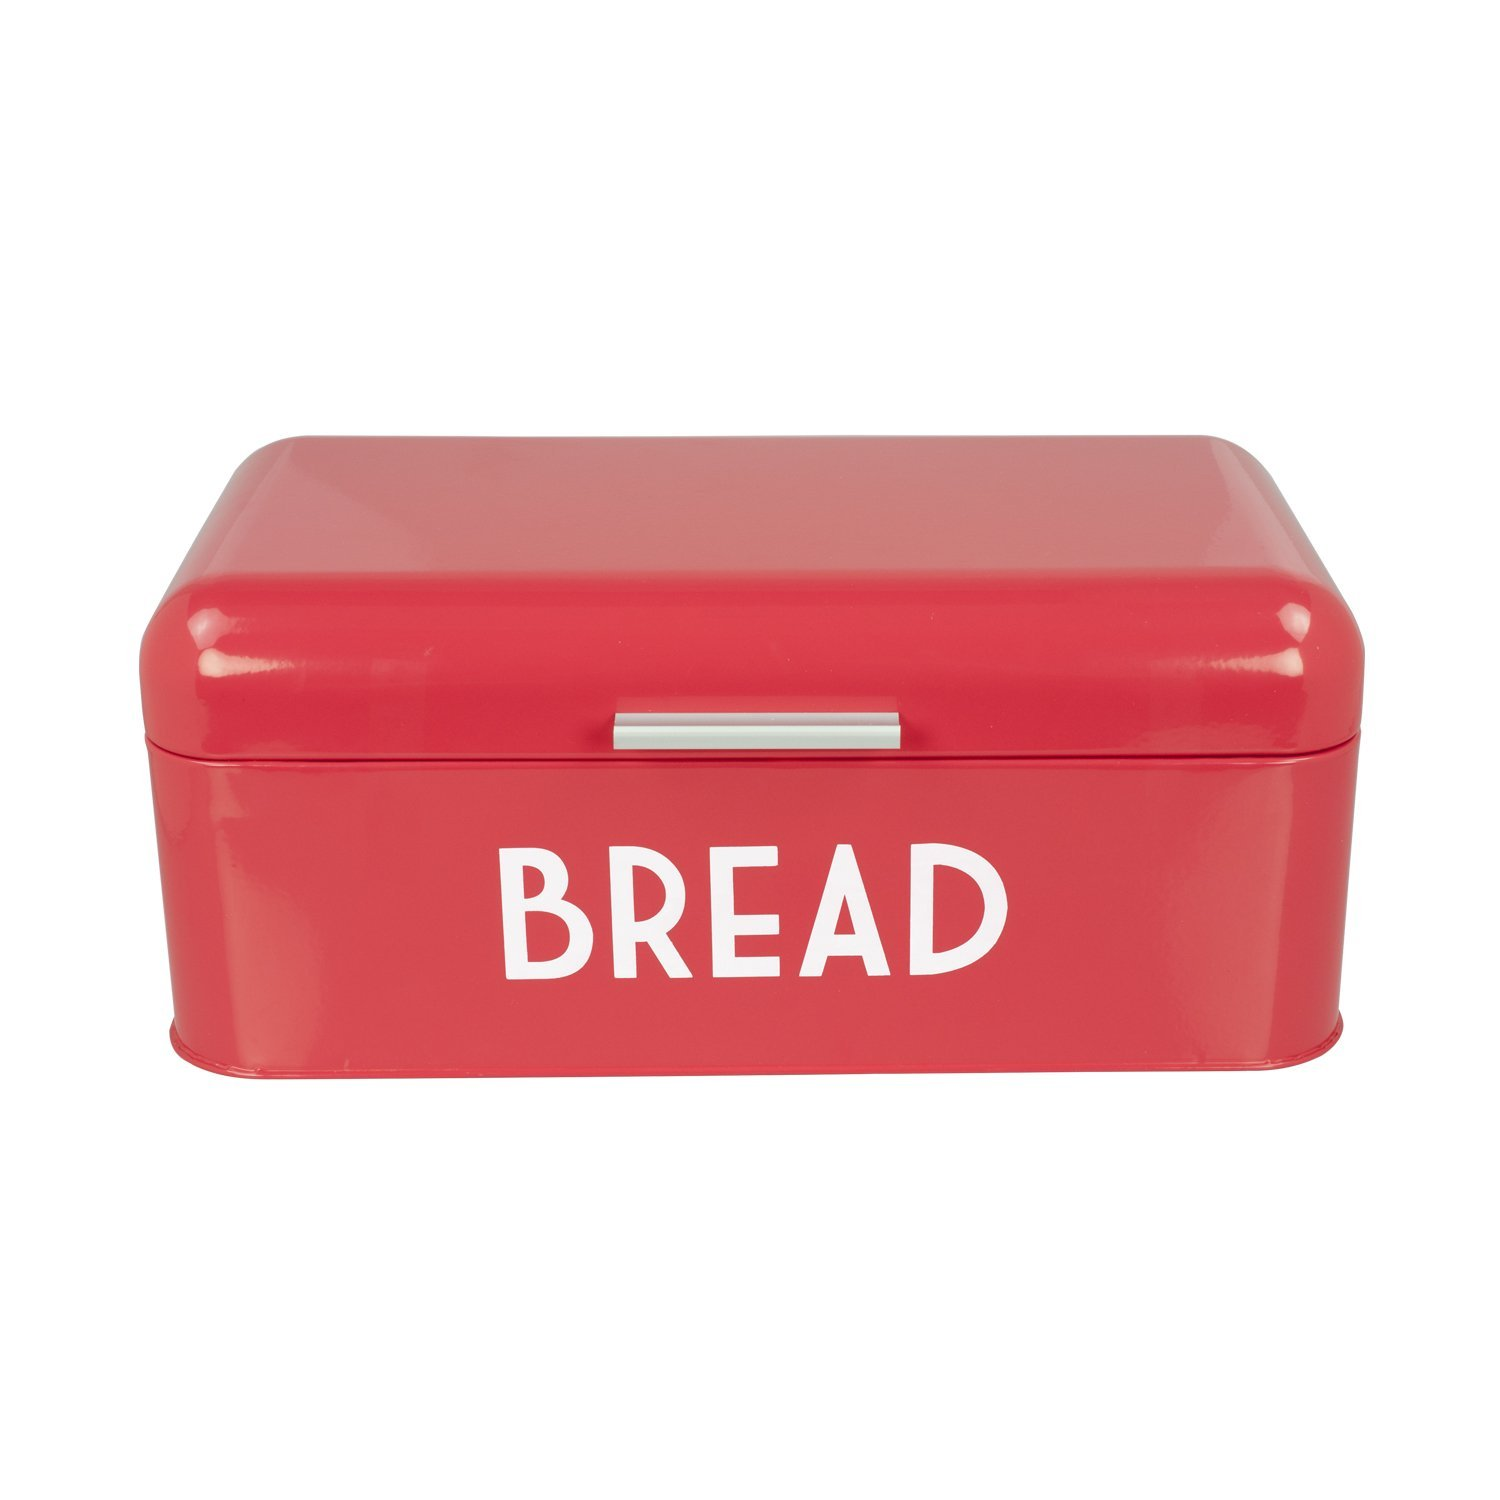 Brand New  BB44455 Metal Bread Box with Lid Red, High-quality